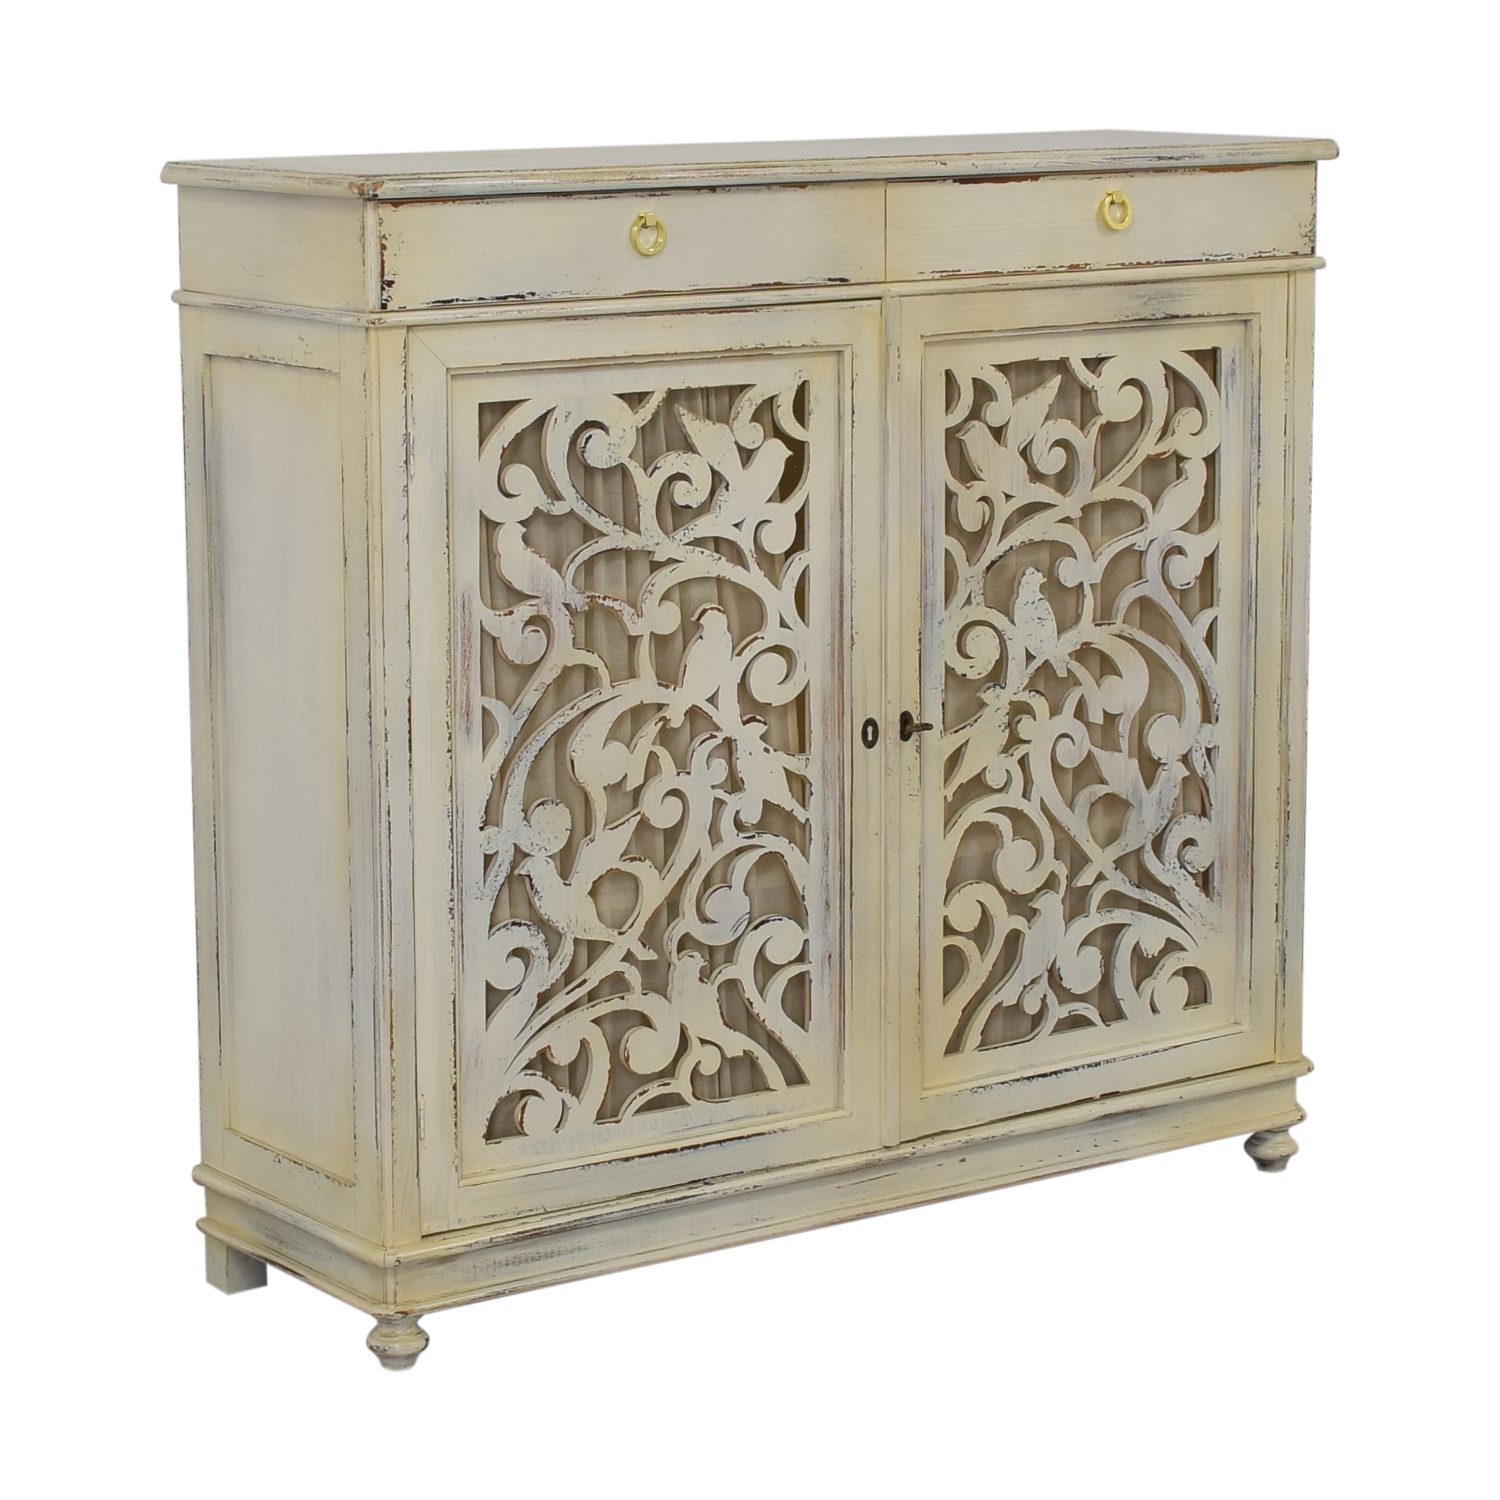 Buying & Design Buying & Design Carved Sideboard dimensions